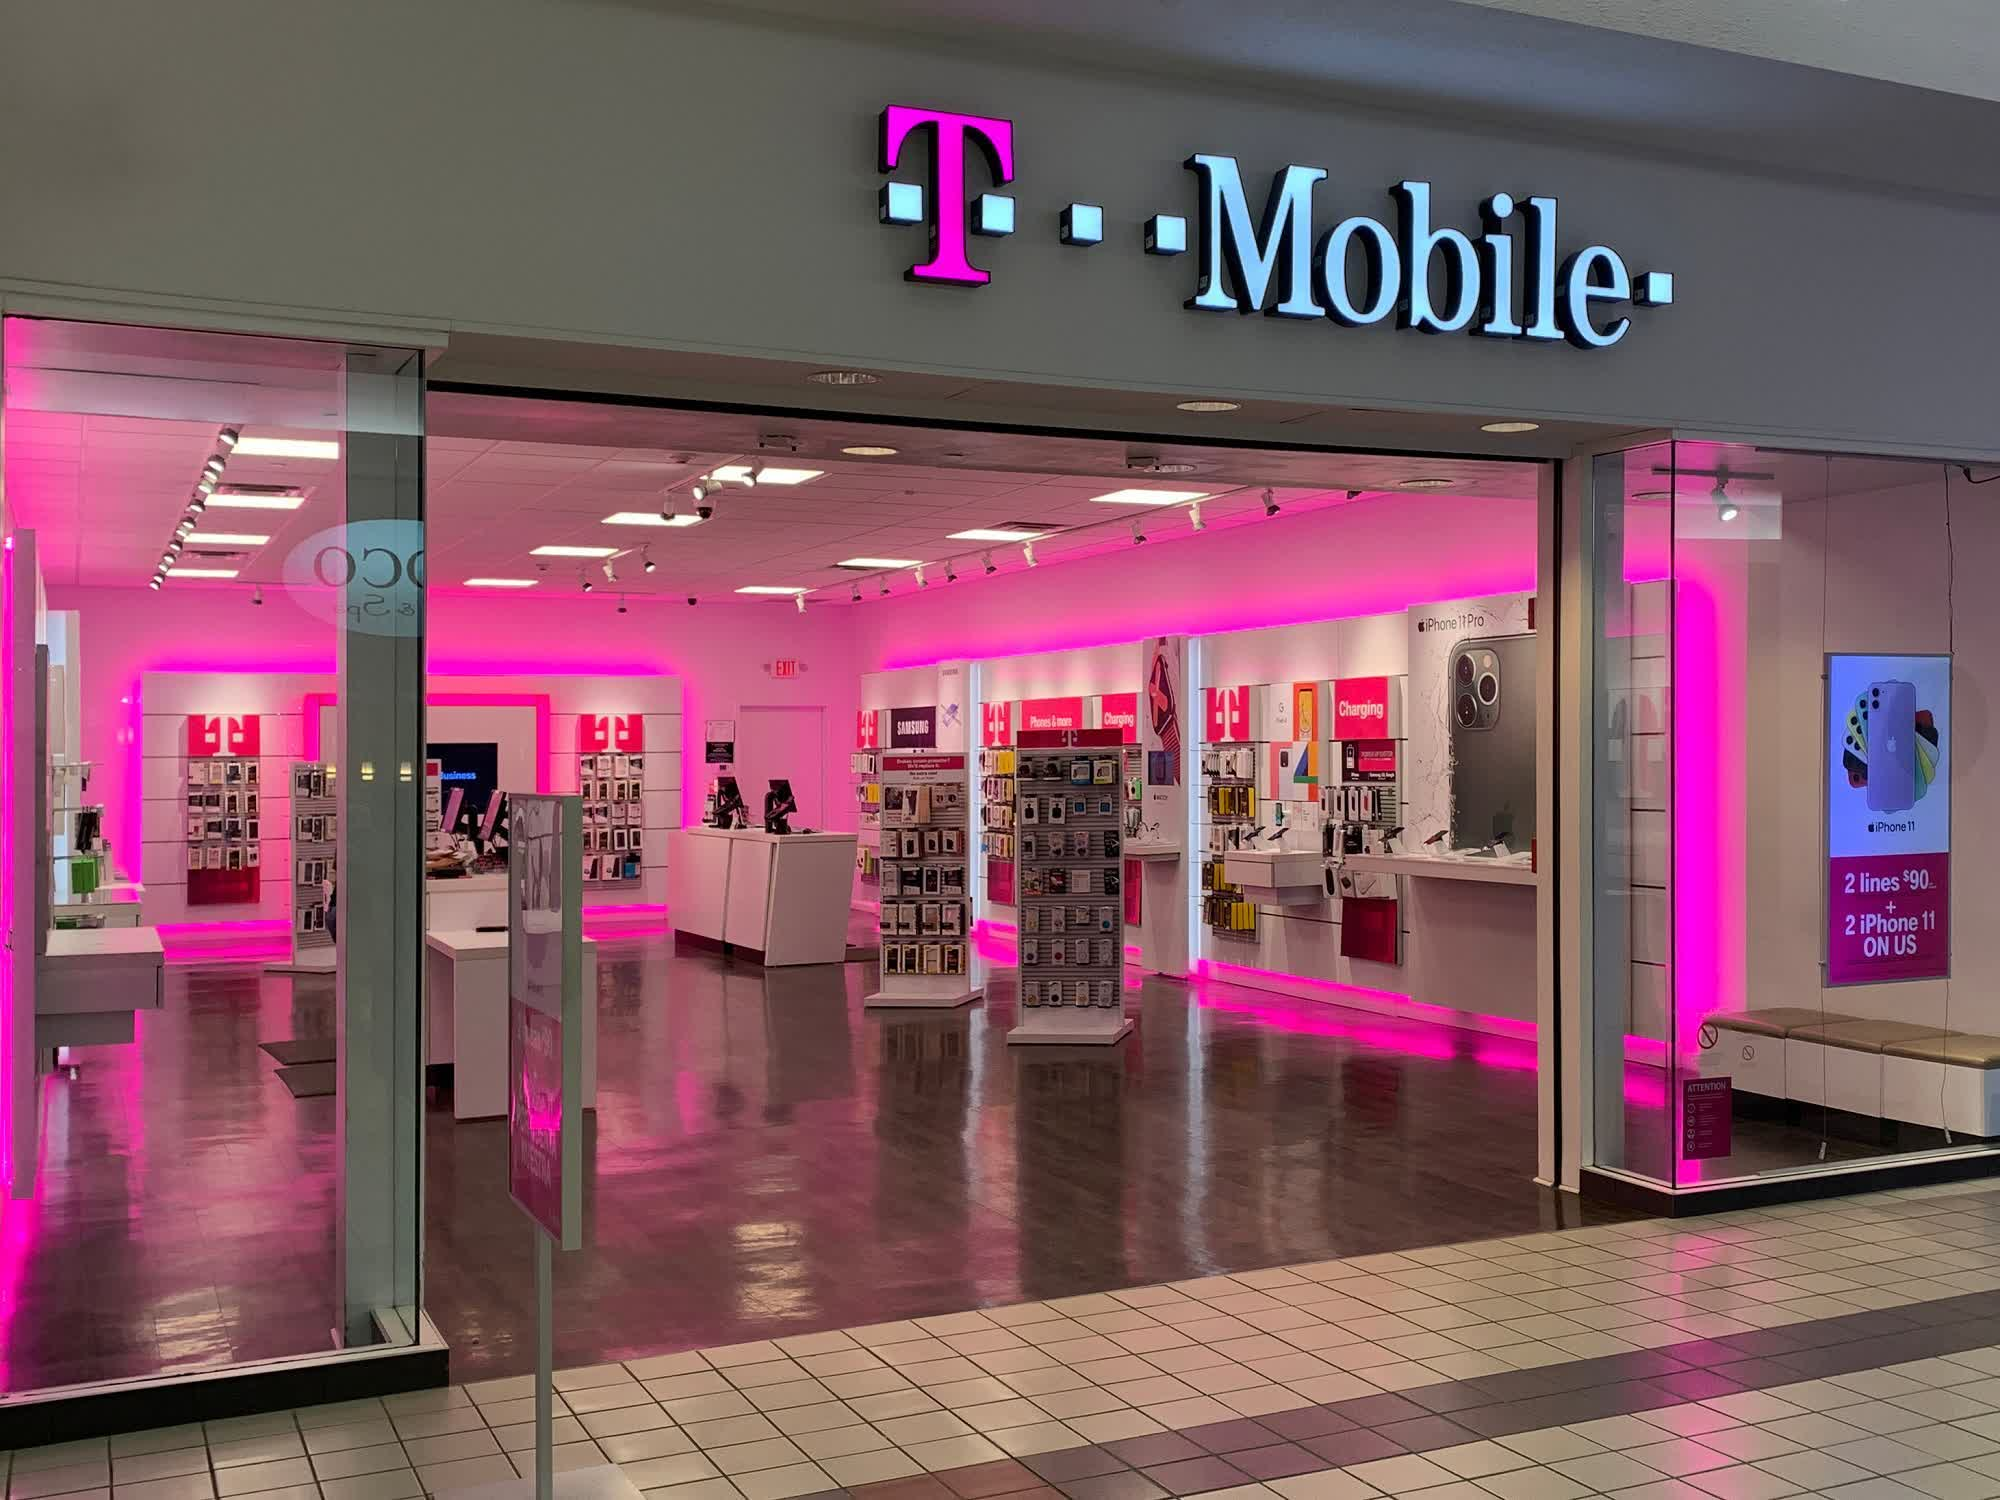 A hacker claims to be selling data on over 100 million T-Mobile customers; the company keeps investigating